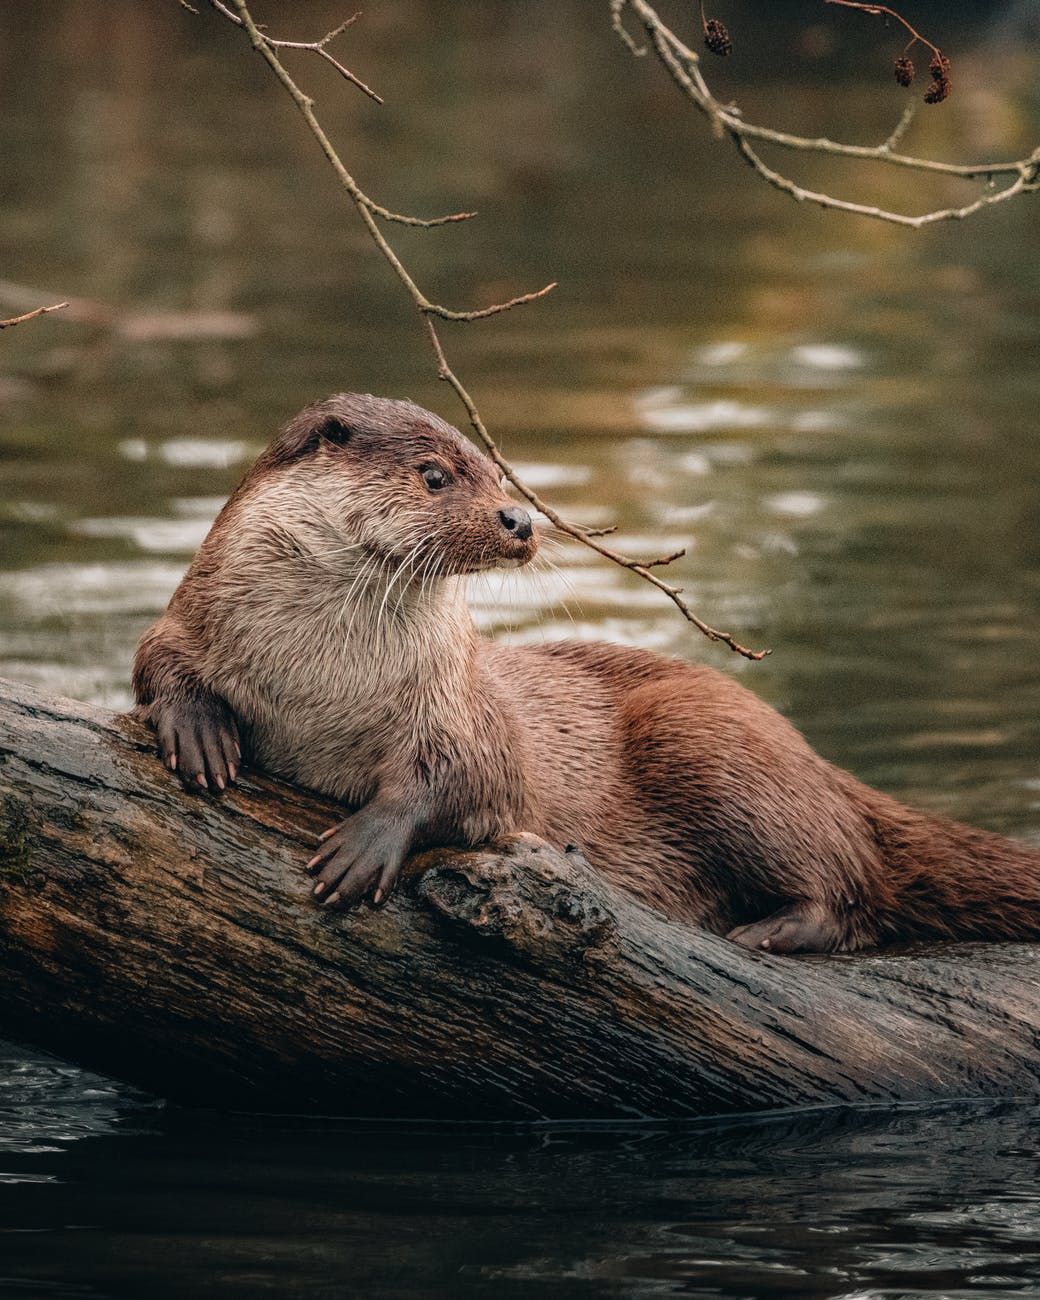 Image of a beaver on a log in the river